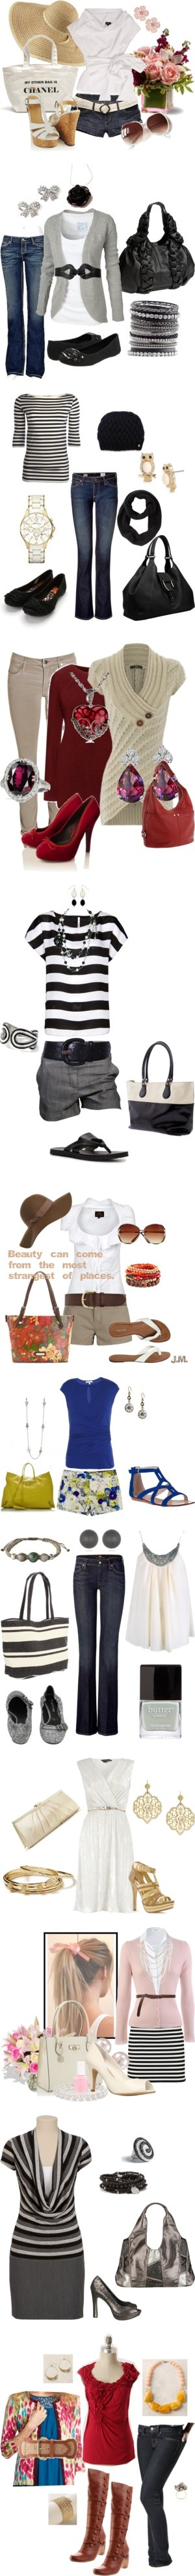 """Style"" by alicia-zigay ❤ liked on Polyvore"